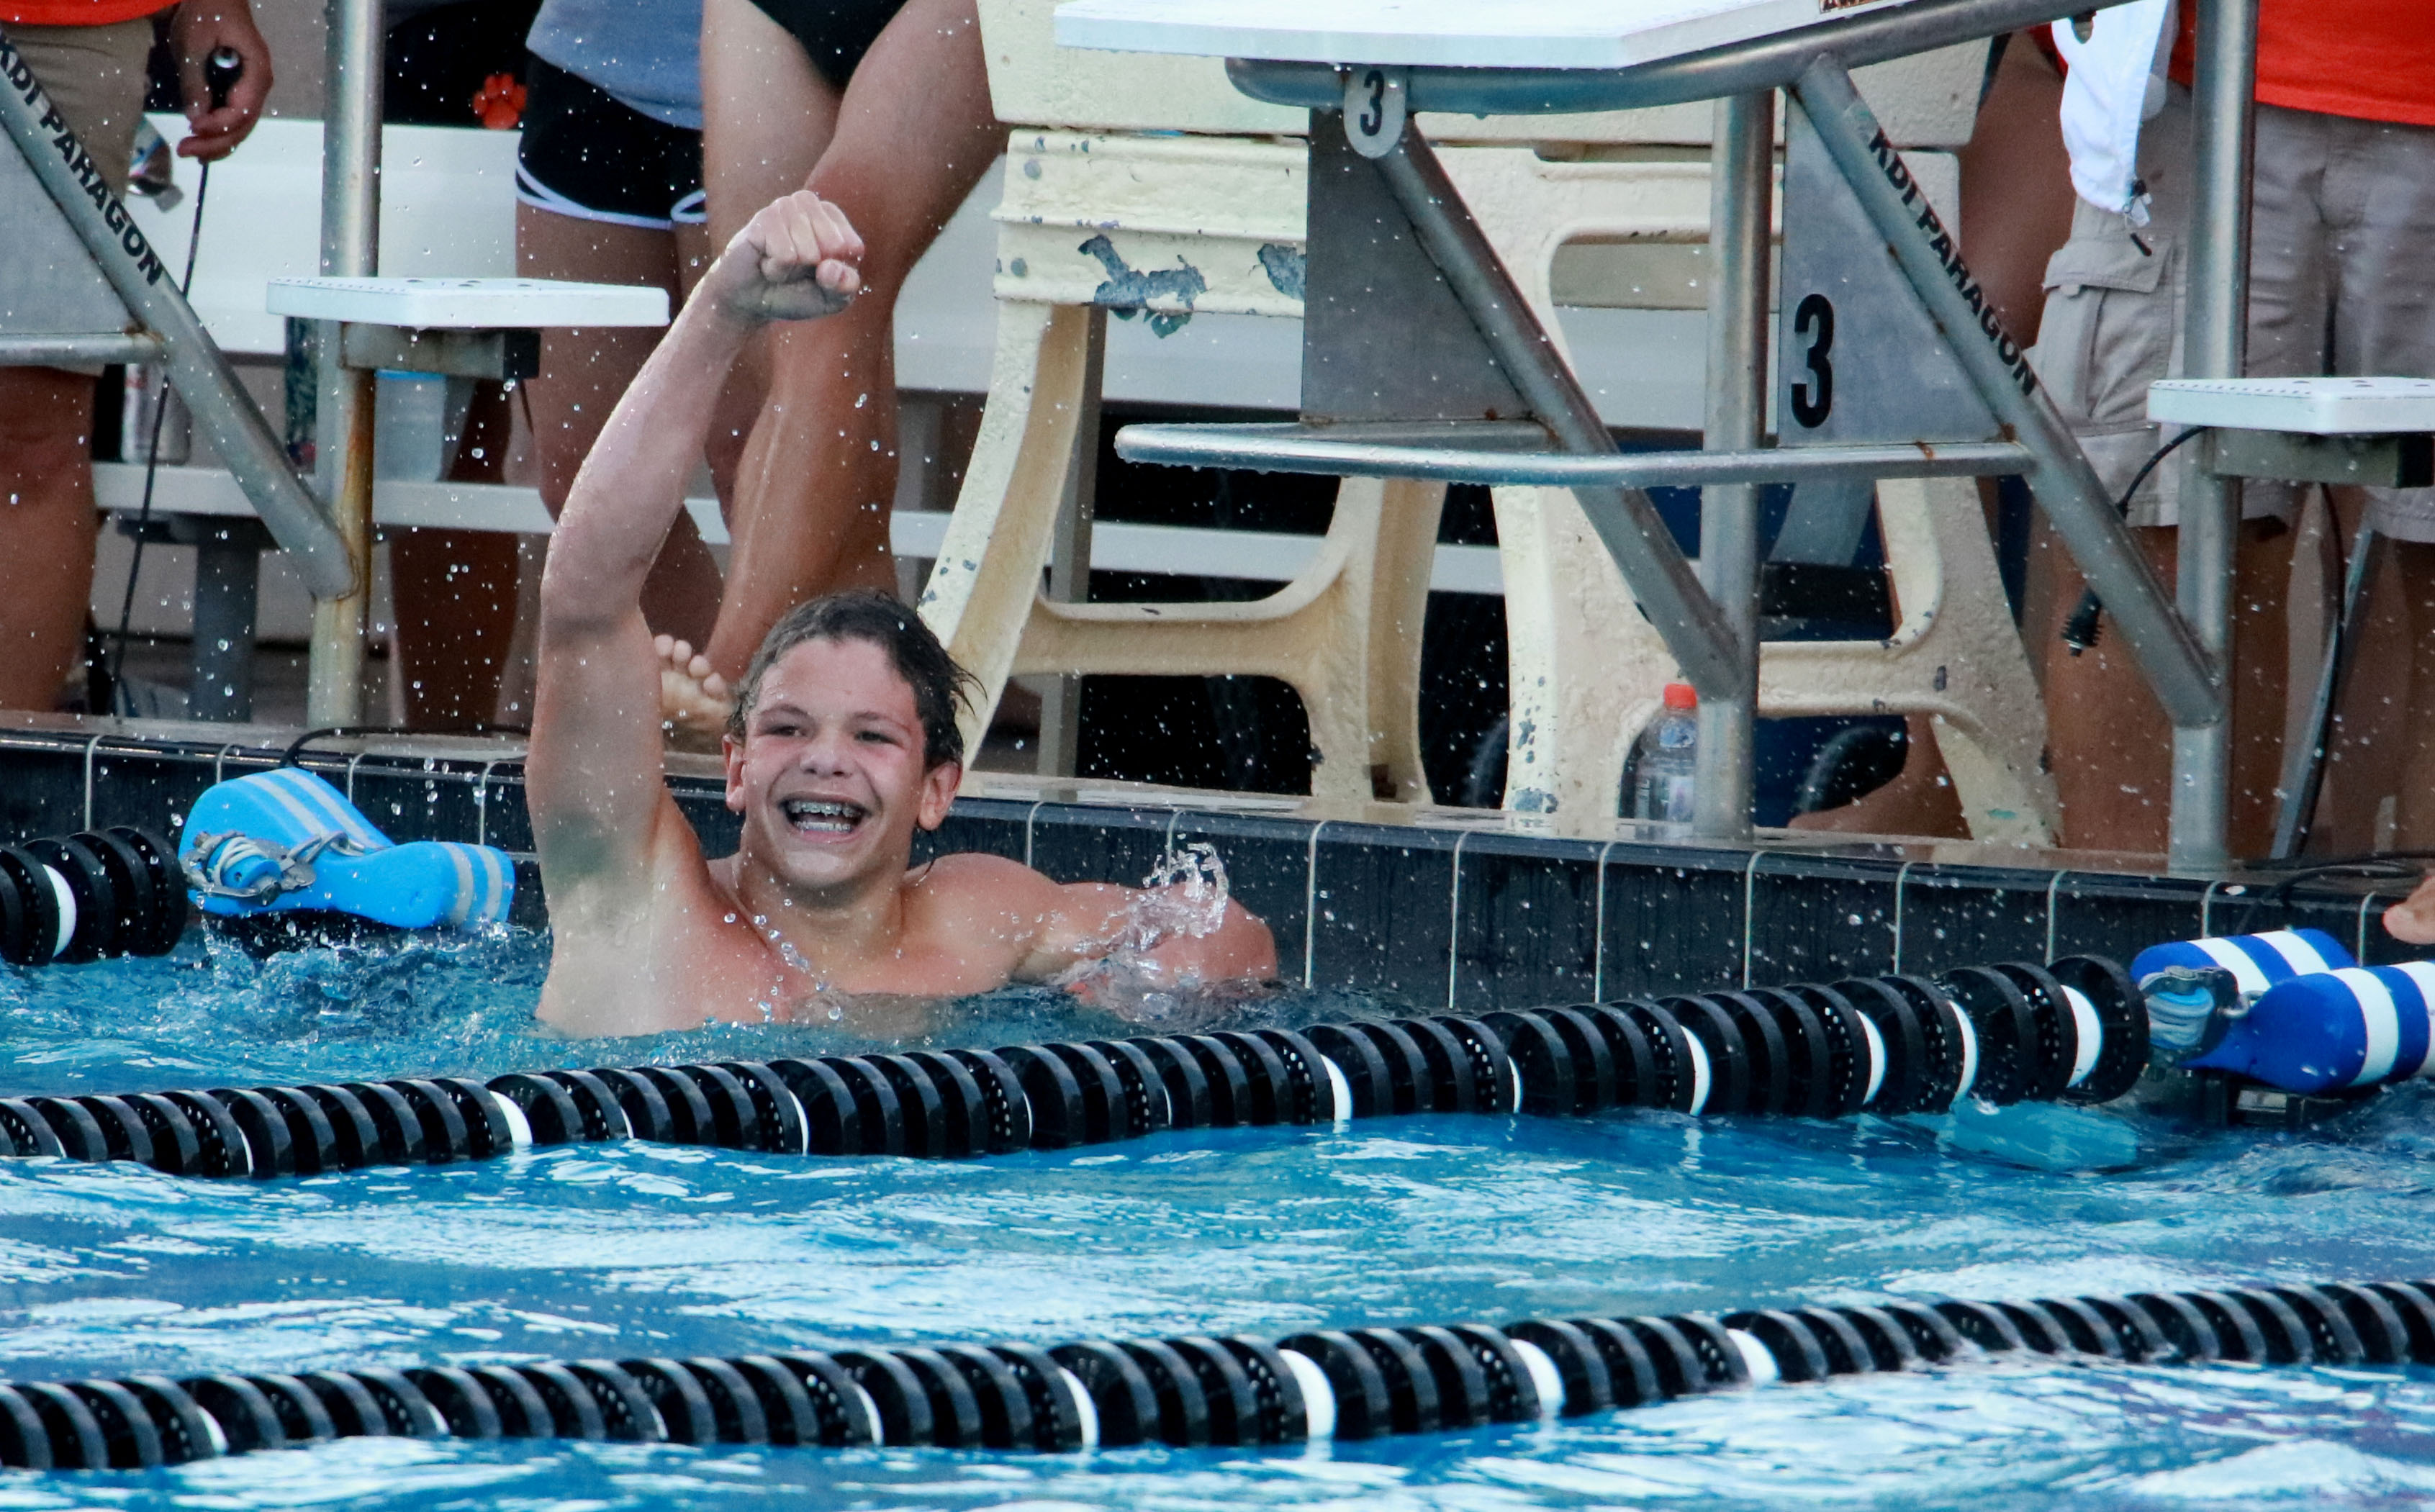 WINNER WINNER. Freshman Trey Bonham celebrates after winning his heat of the 100 freestyle.